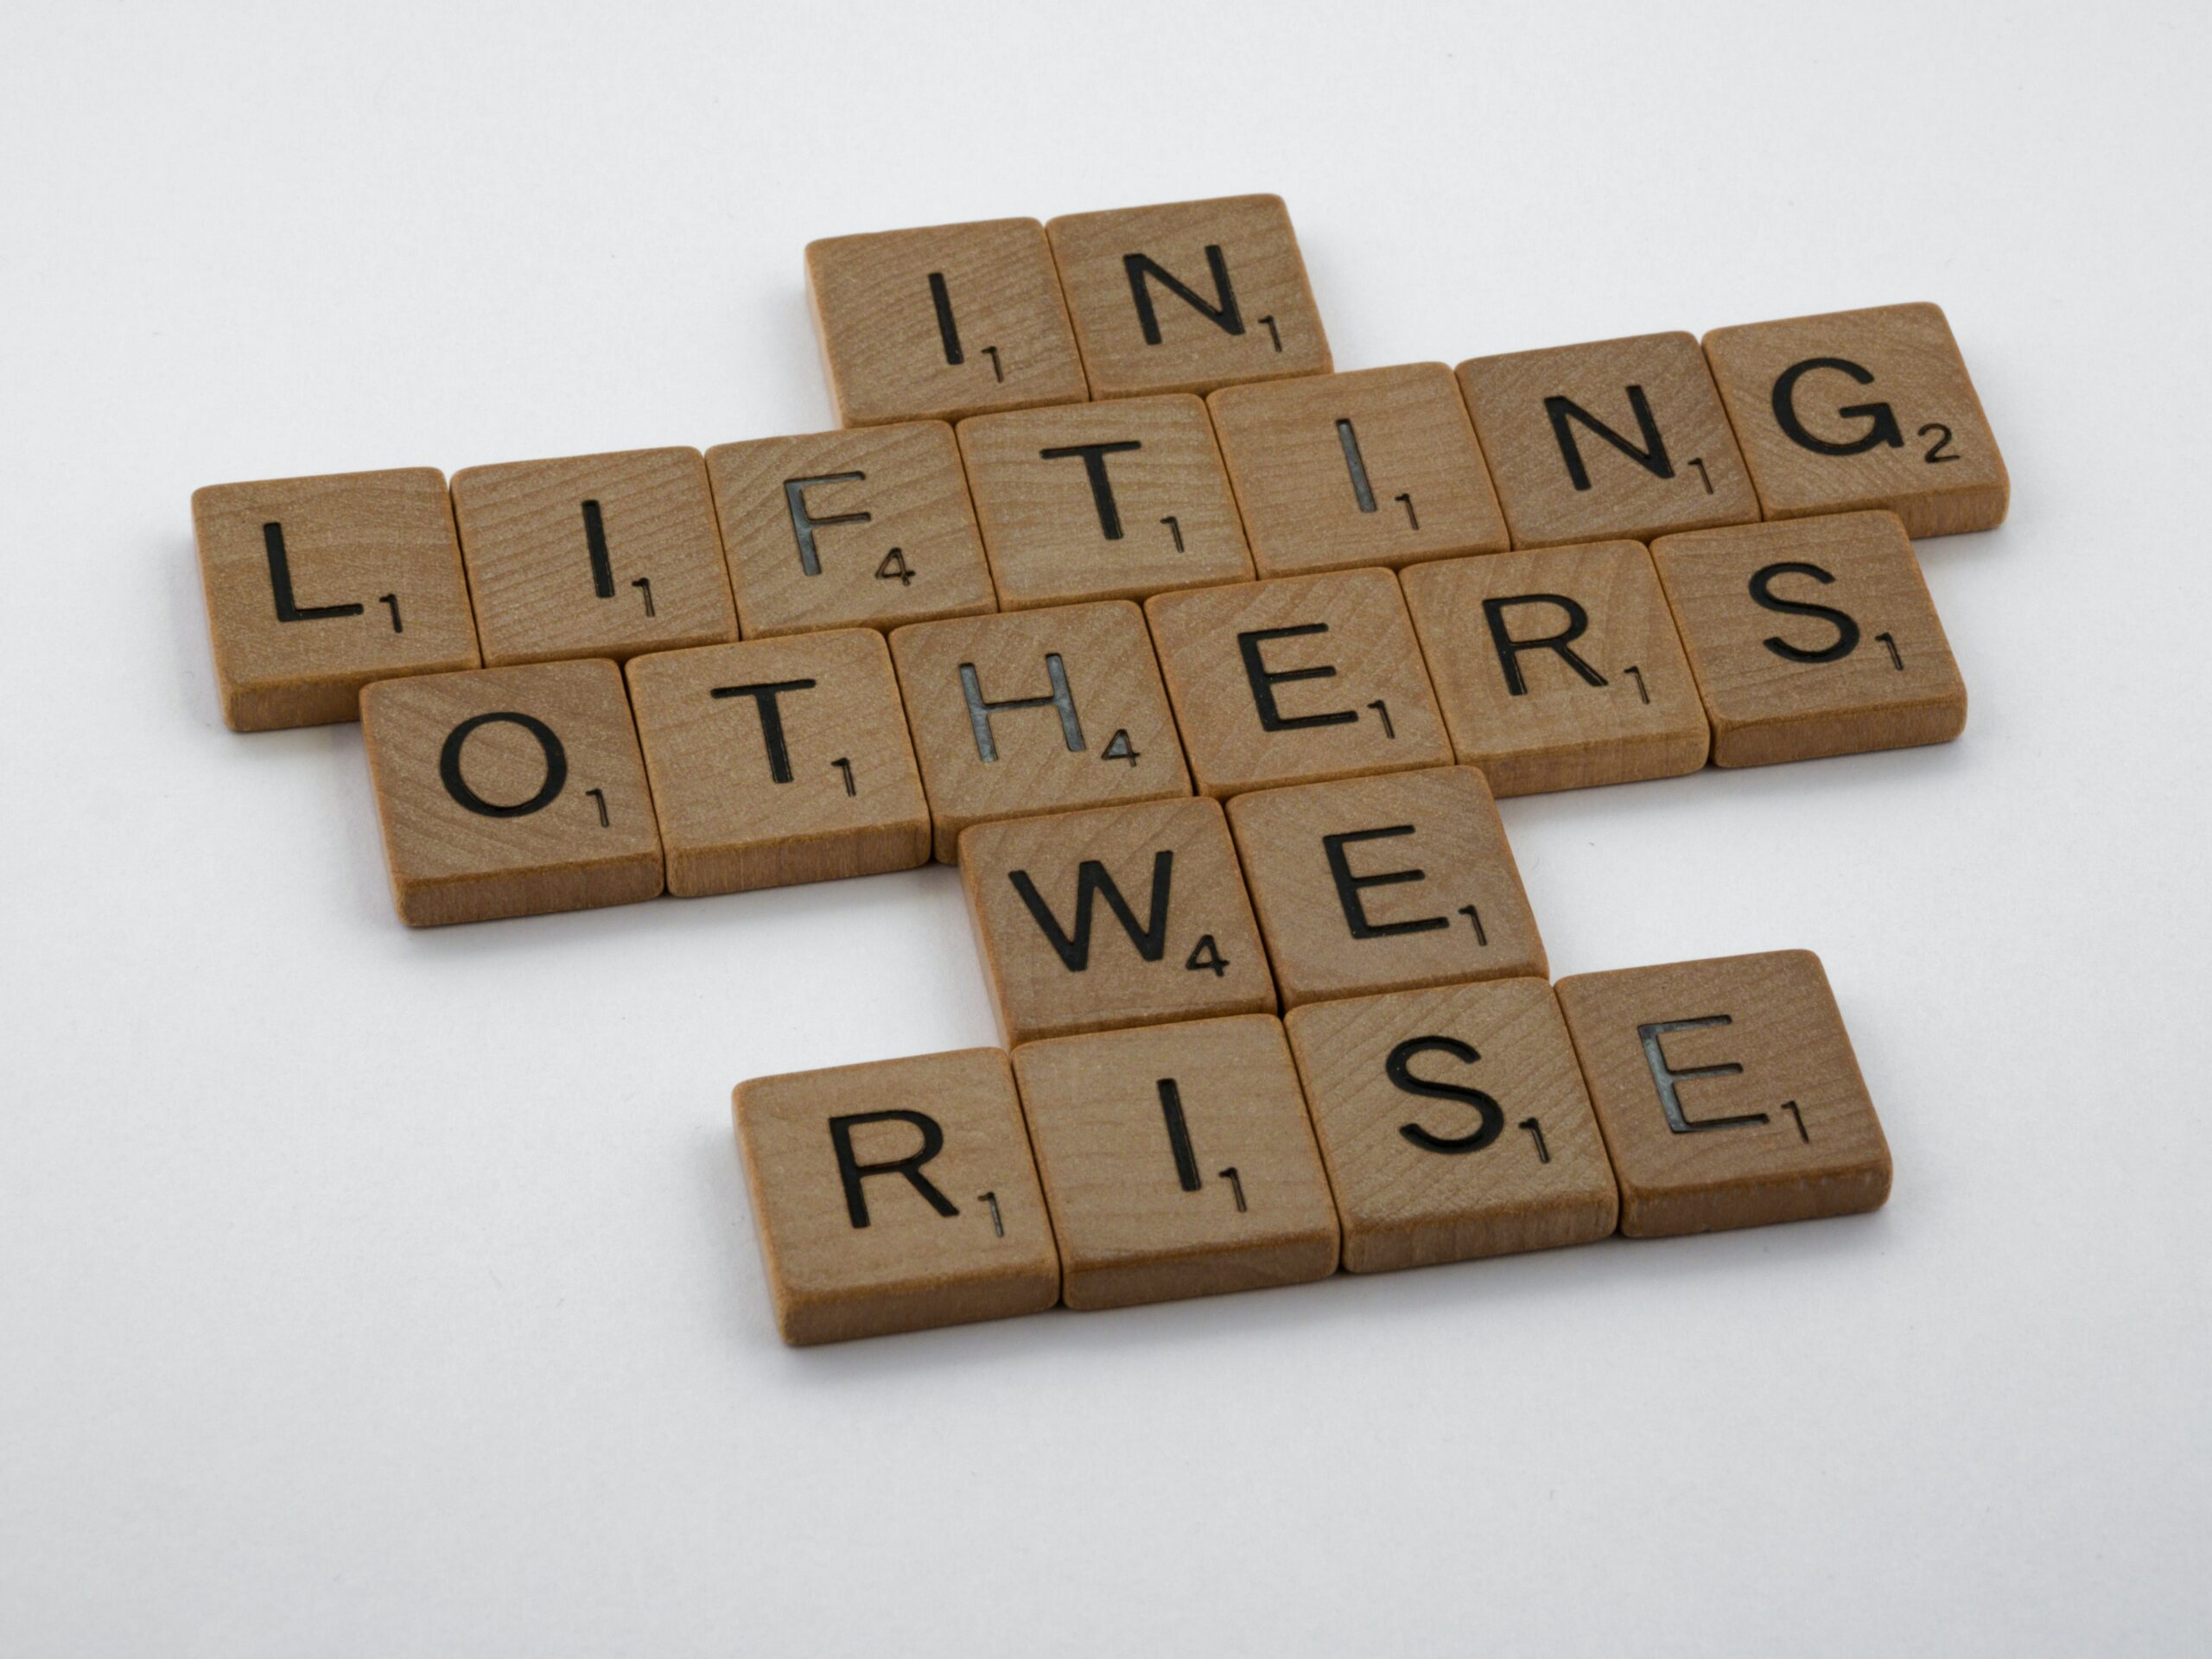 Scrabble tiles spelling out 'In lifting others we rise' against white background